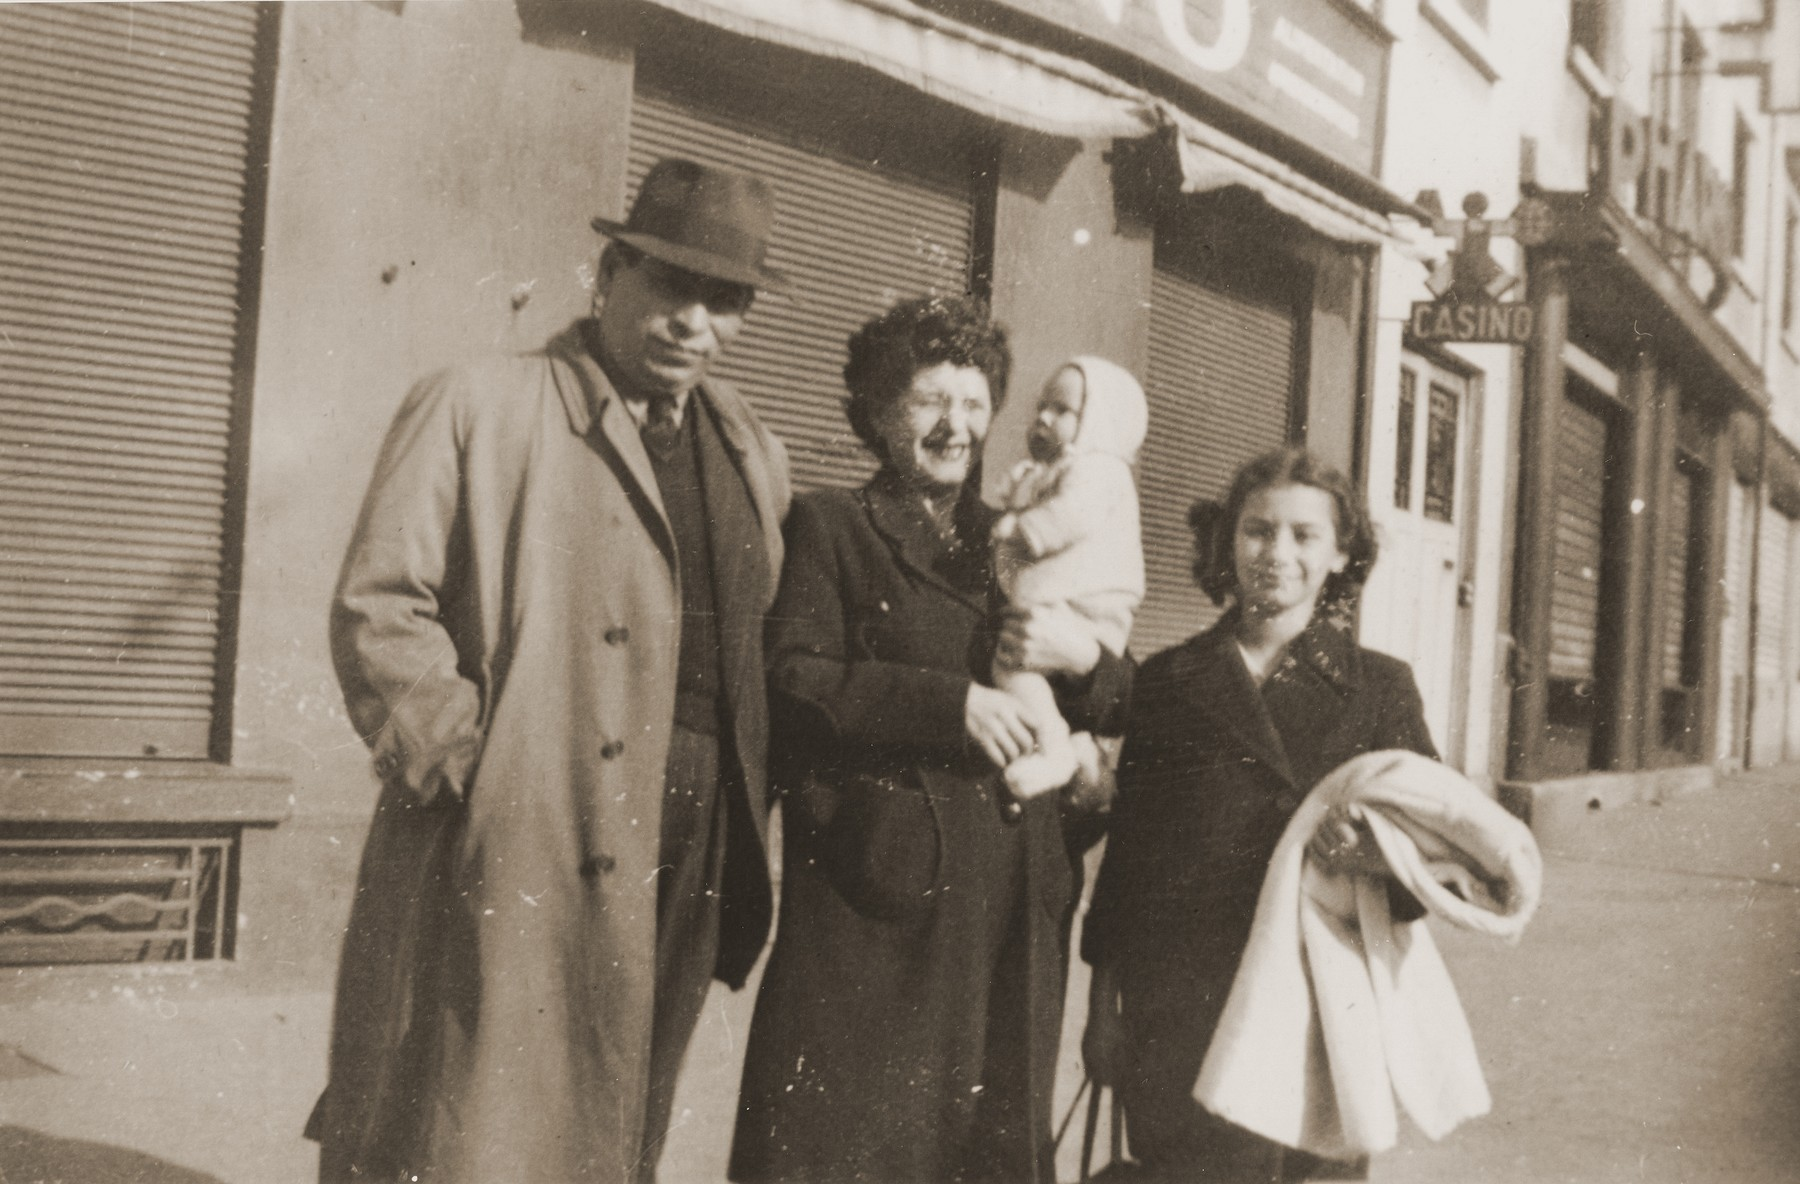 The Rosenbaum family living as non-Jews poses on street corner in Lyon.  Pictured from left to right are Simon, Esther holding her newborn daughter Michele and Frida Rosenbaum.